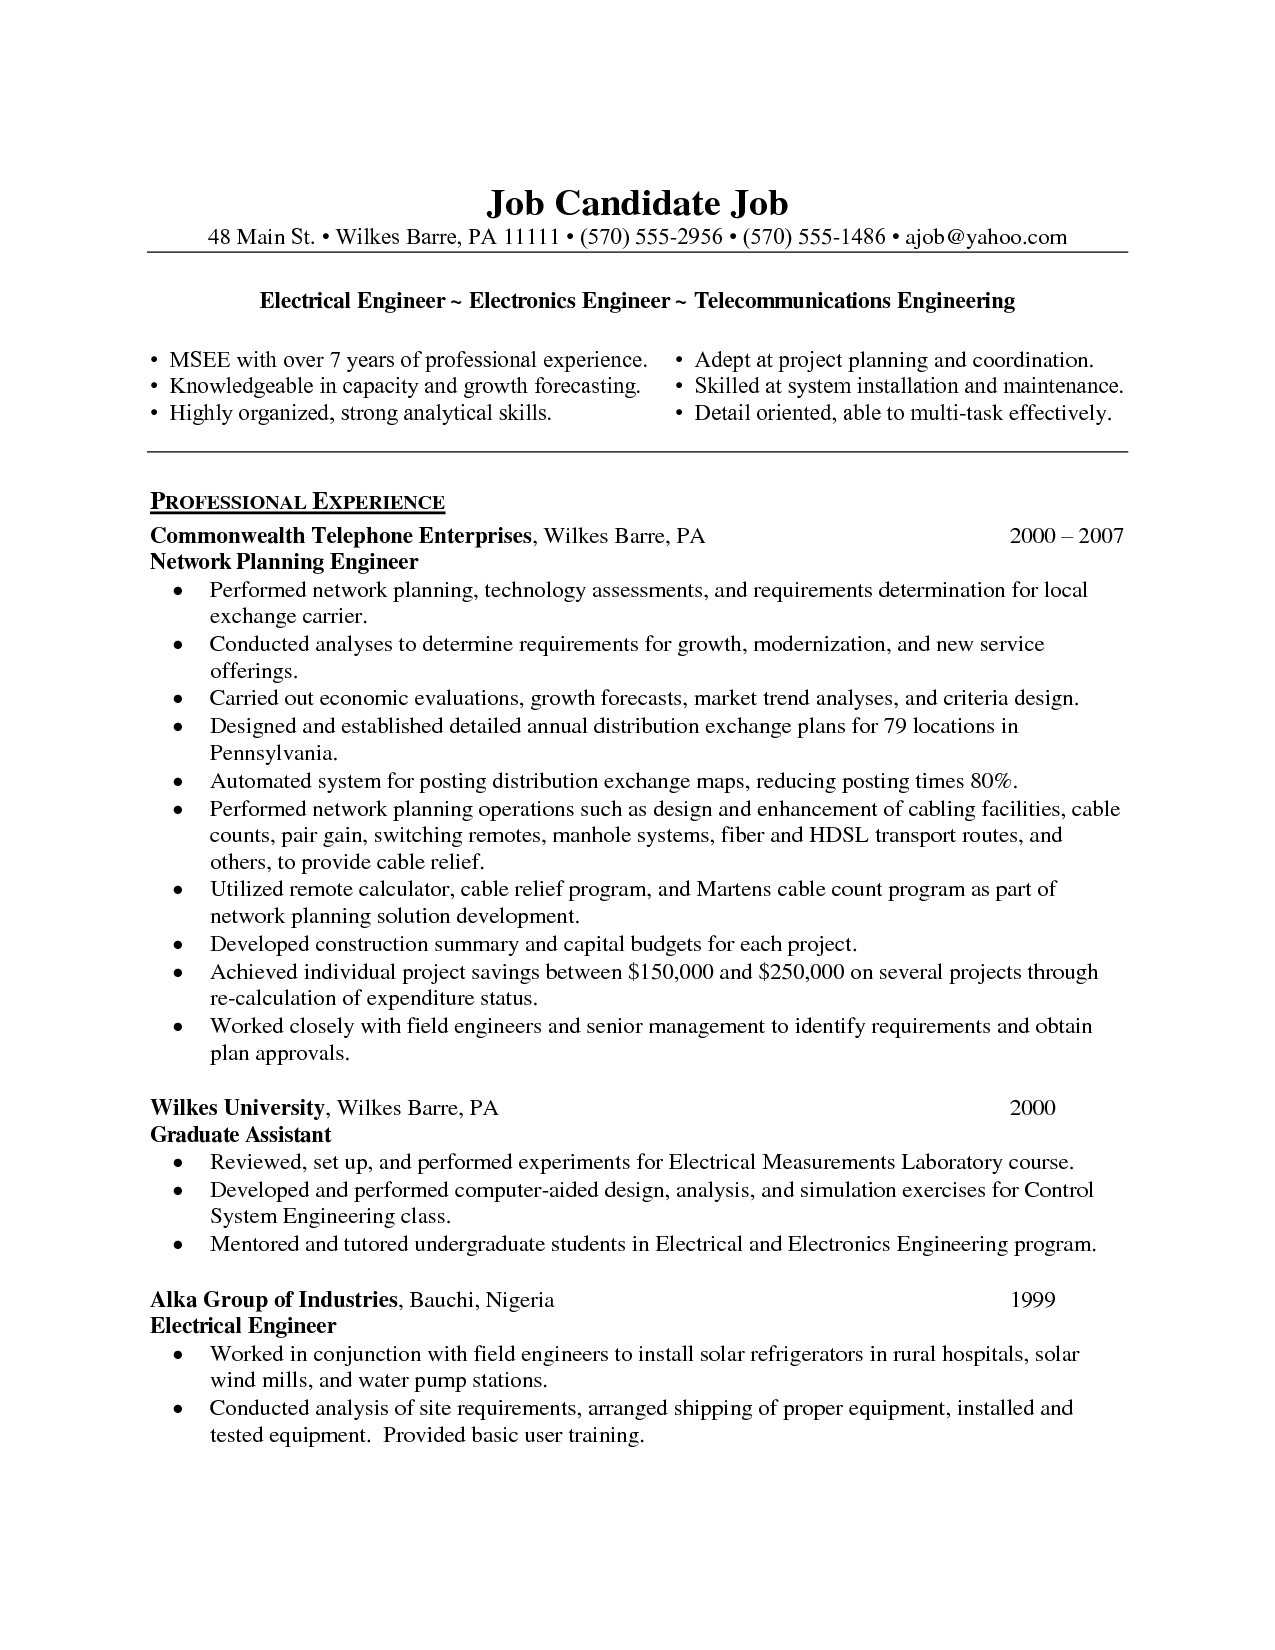 Electrical Engineer Resume Example Http Www Resumecareer Info Electrical Engineer Resum Engineering Resume Engineering Resume Templates Job Resume Examples